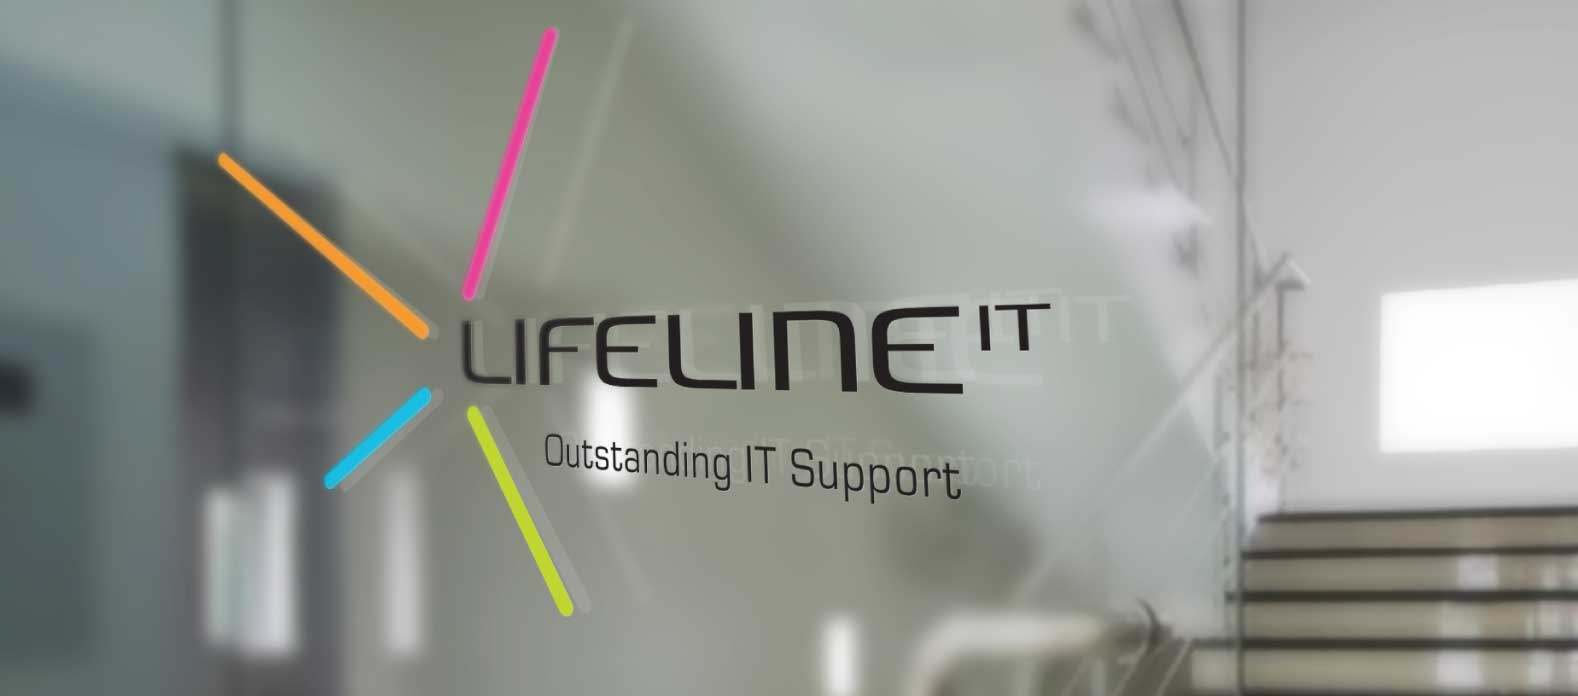 Lifeline IT's logo - signage on the office glass door